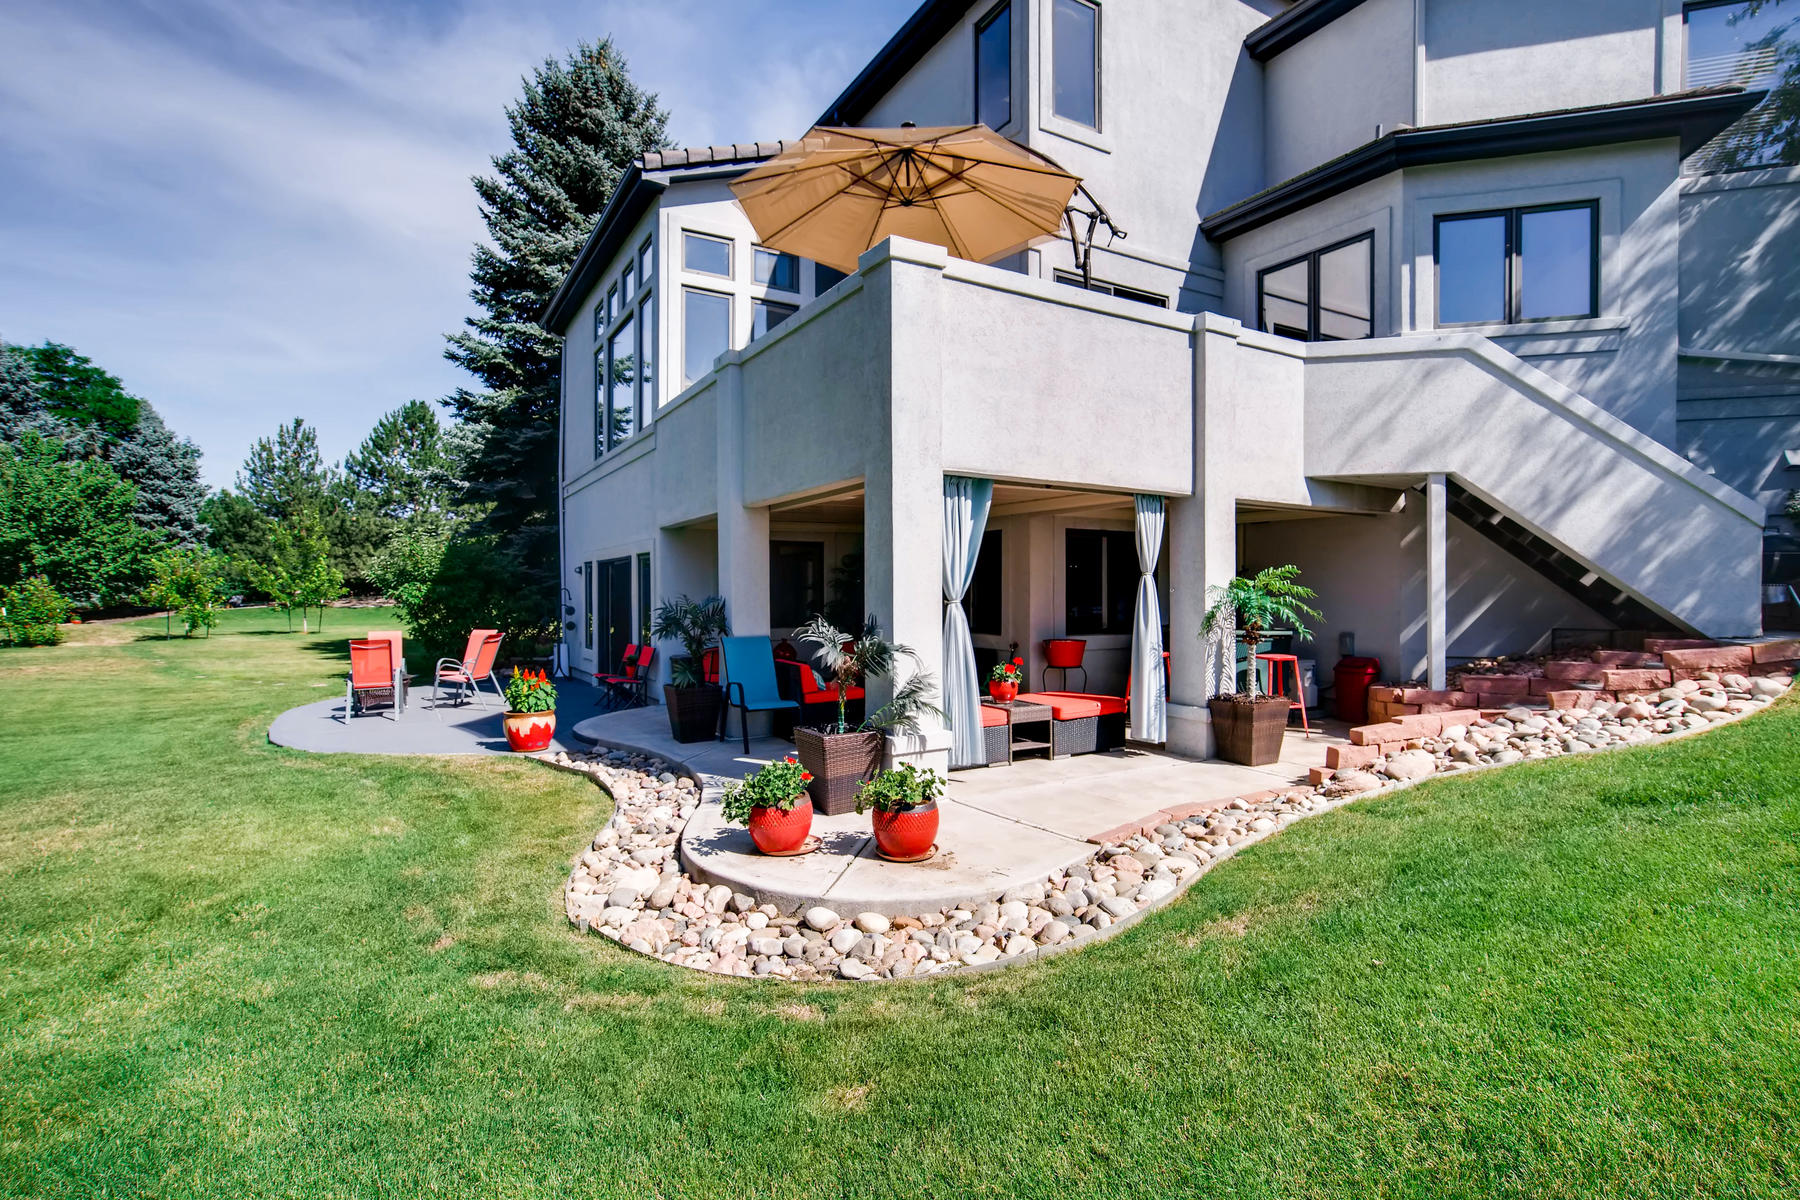 Single Family Homes for Active at 5511 Hawthorn Circle Greenwood Village, Colorado 80121 United States